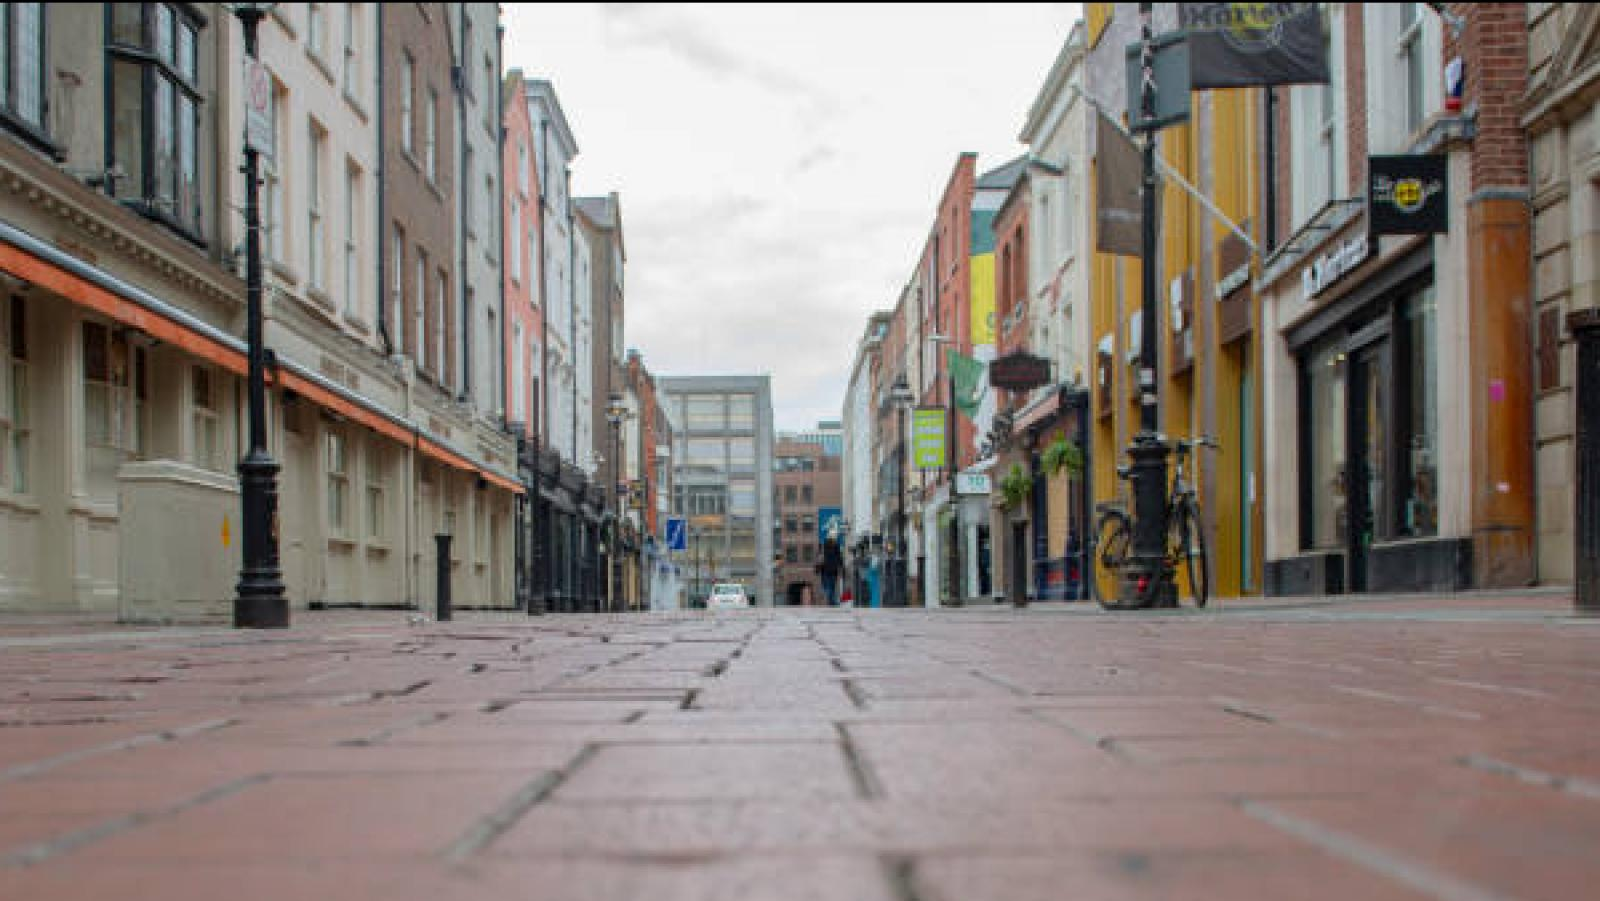 A Dublin street during the lockdown period